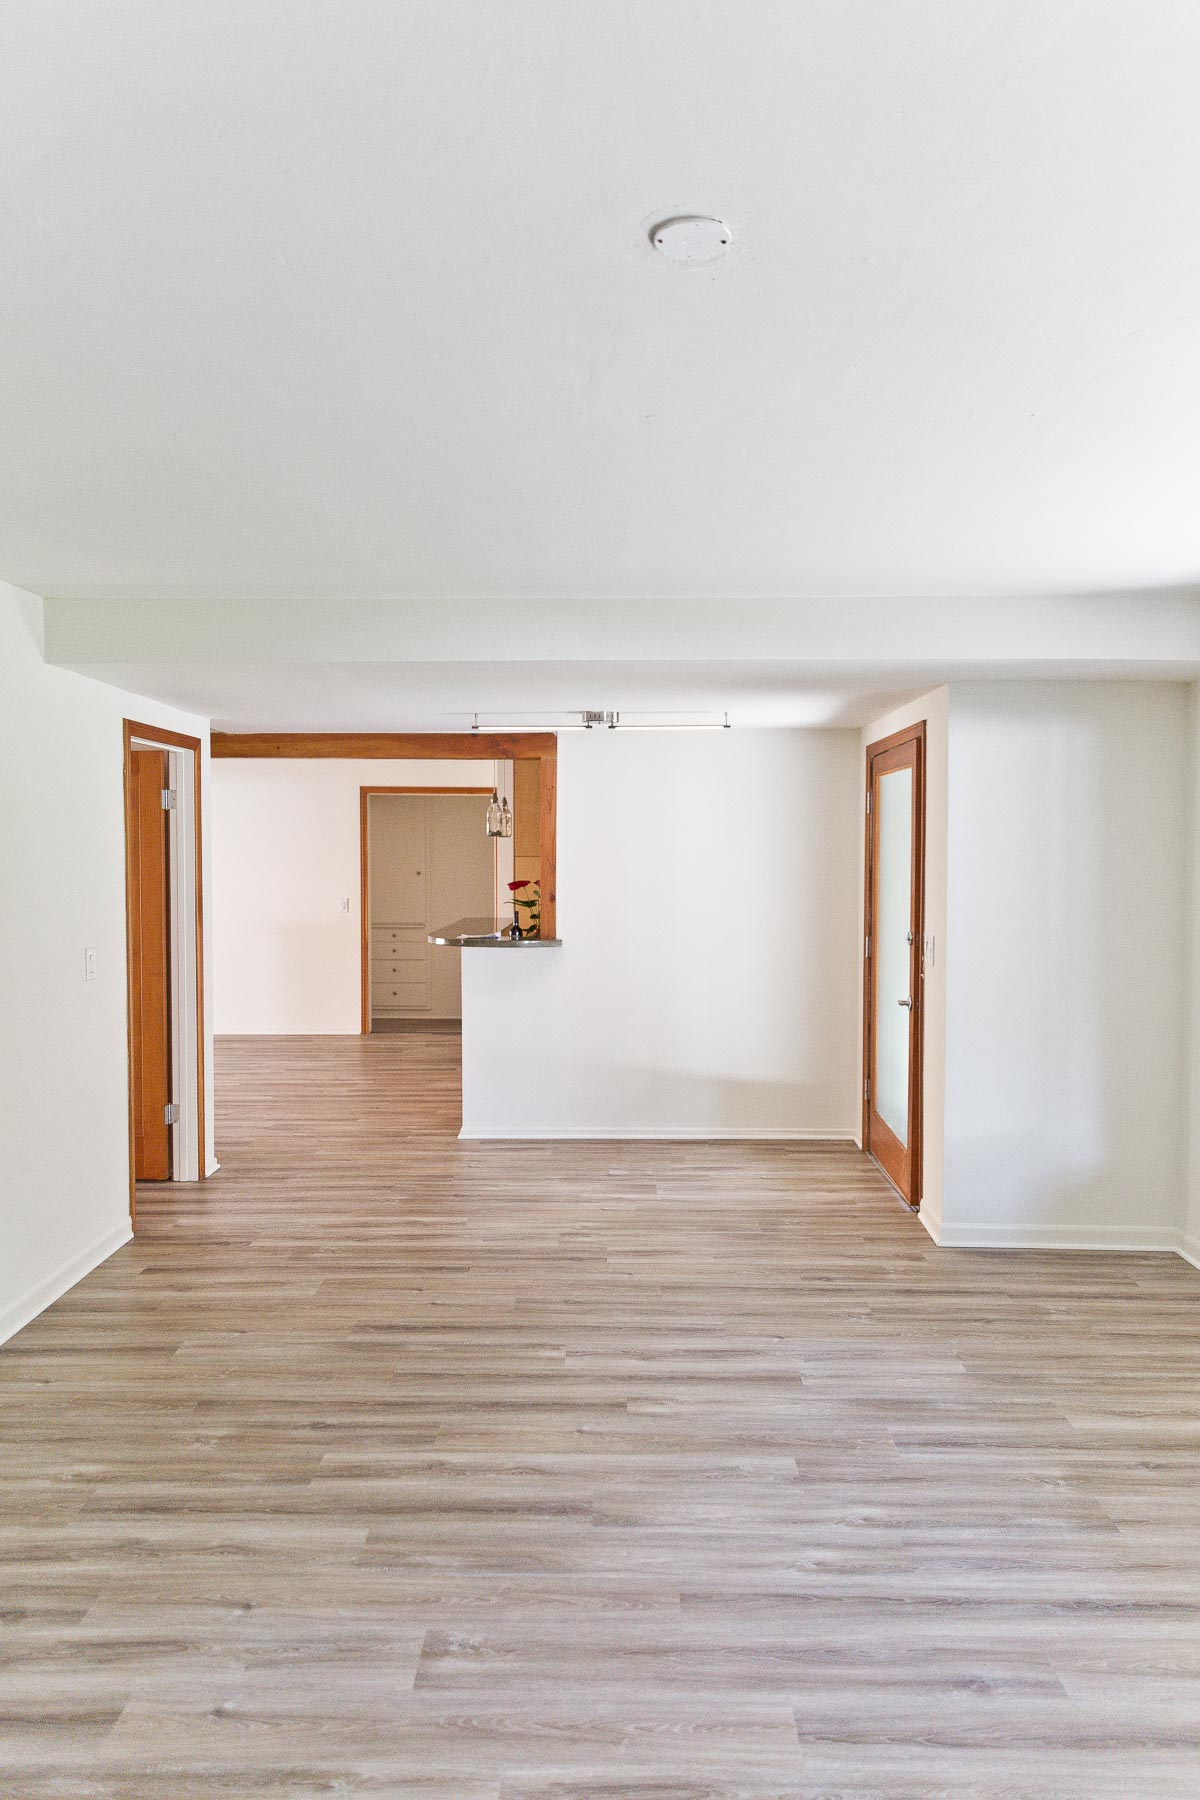 Photo of empty house with white walls and wood floors.